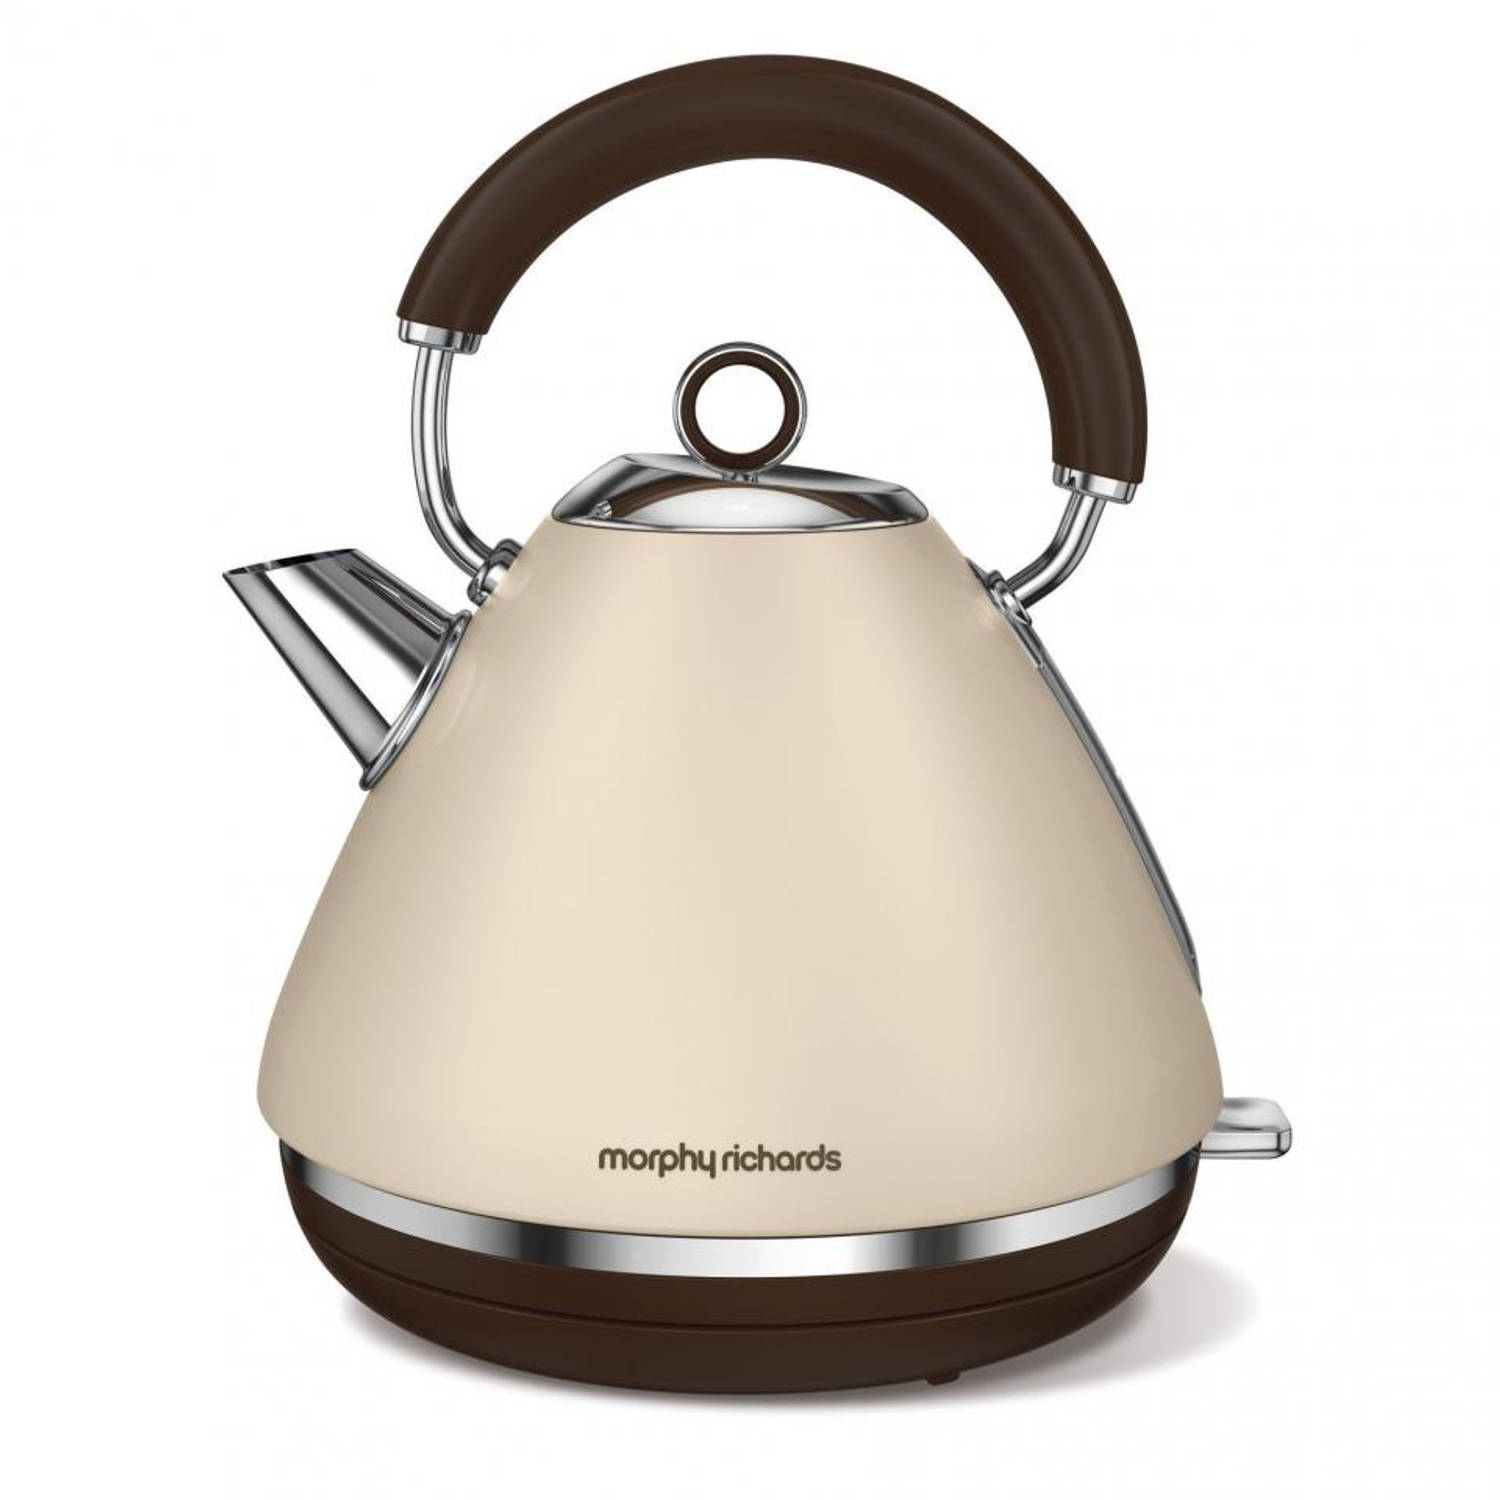 Morphy Richards waterkoker Retro Accents - zandkleurig